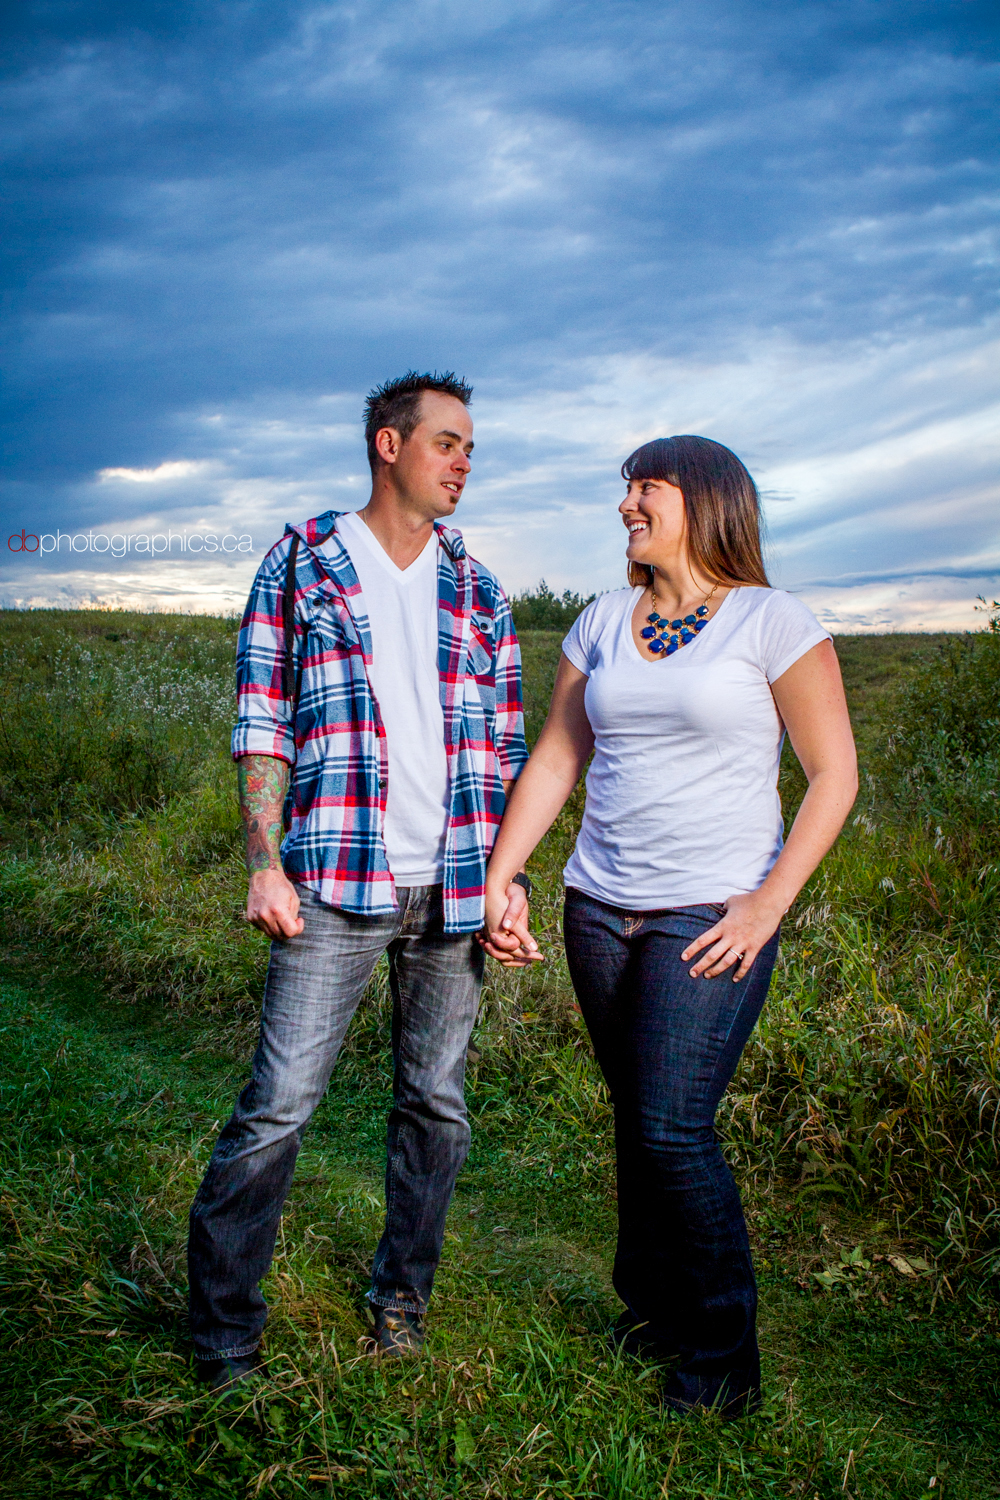 Rob & Alicia Engagement Shoot - 20130922 - 0061.jpg